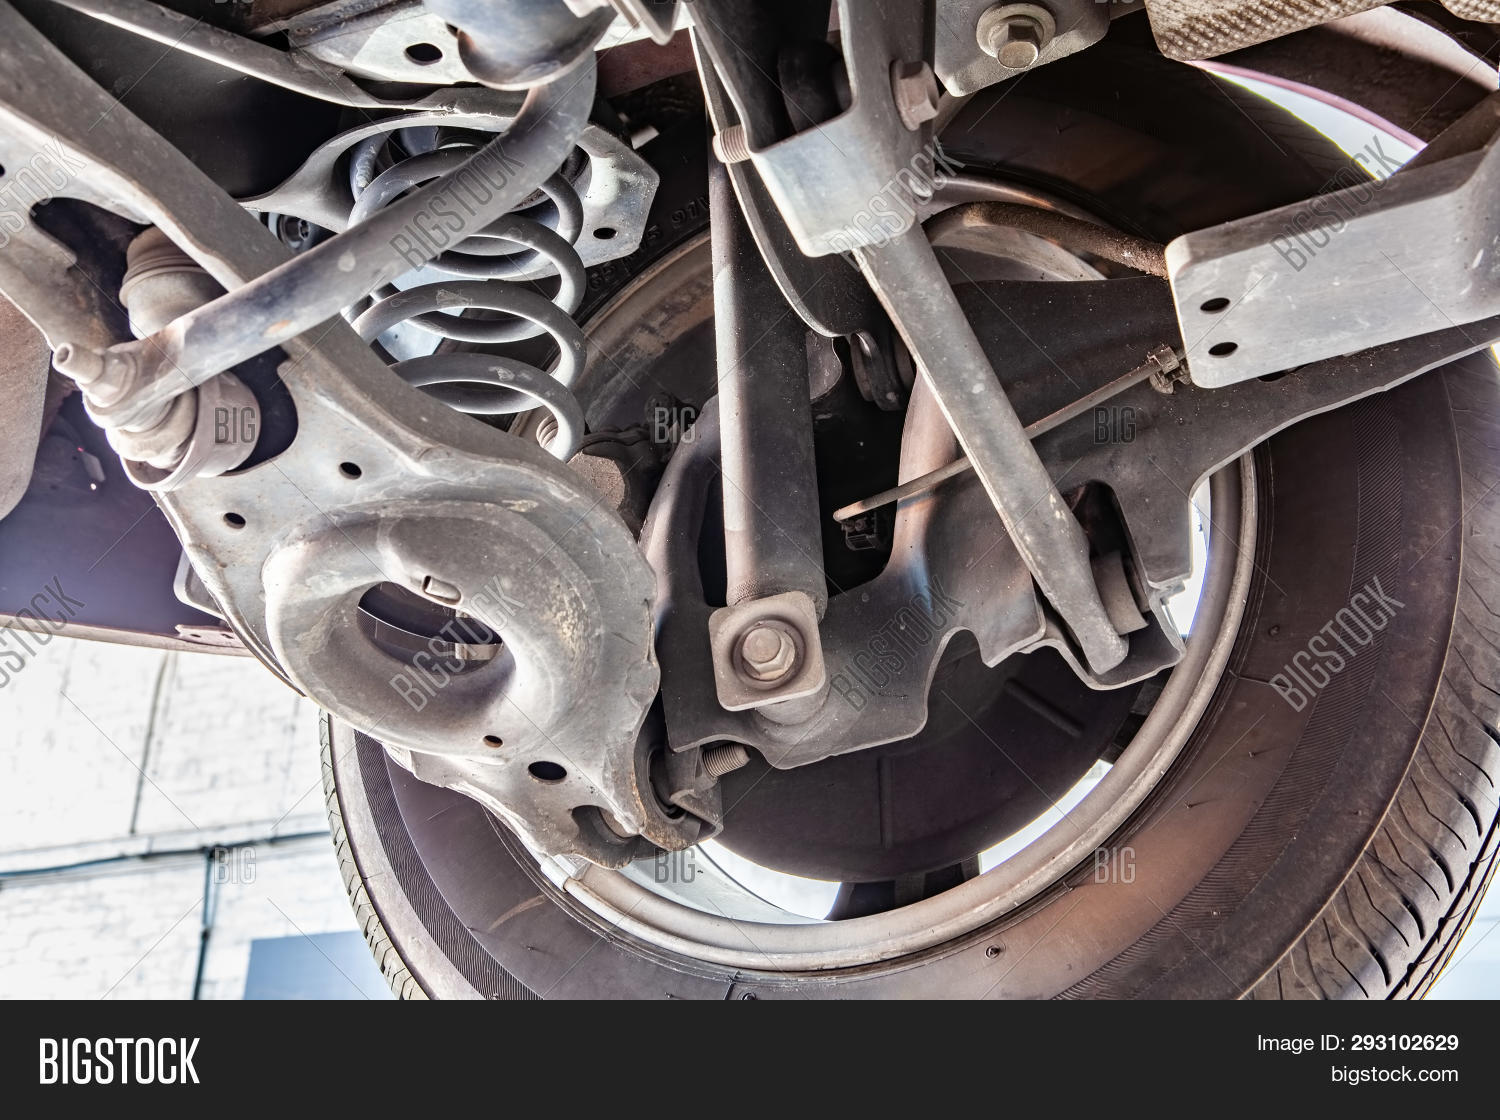 Metal,Spring,Station,Steel,Technology,absorber,auto,automobile,automotive,axle,brake,car,carriage,chassis,check-up,closeup,coil,engineering,equipment,fixing,frame,hoist,hydraulic,industrial,inspection,lift,maintenance,mechanical,pipes,power,repair,safety,service,servicing,shock,shop,suspension,system,transportation,tuning,under,underbody,undercarriage,underneath,vehicle,wheel,workshop